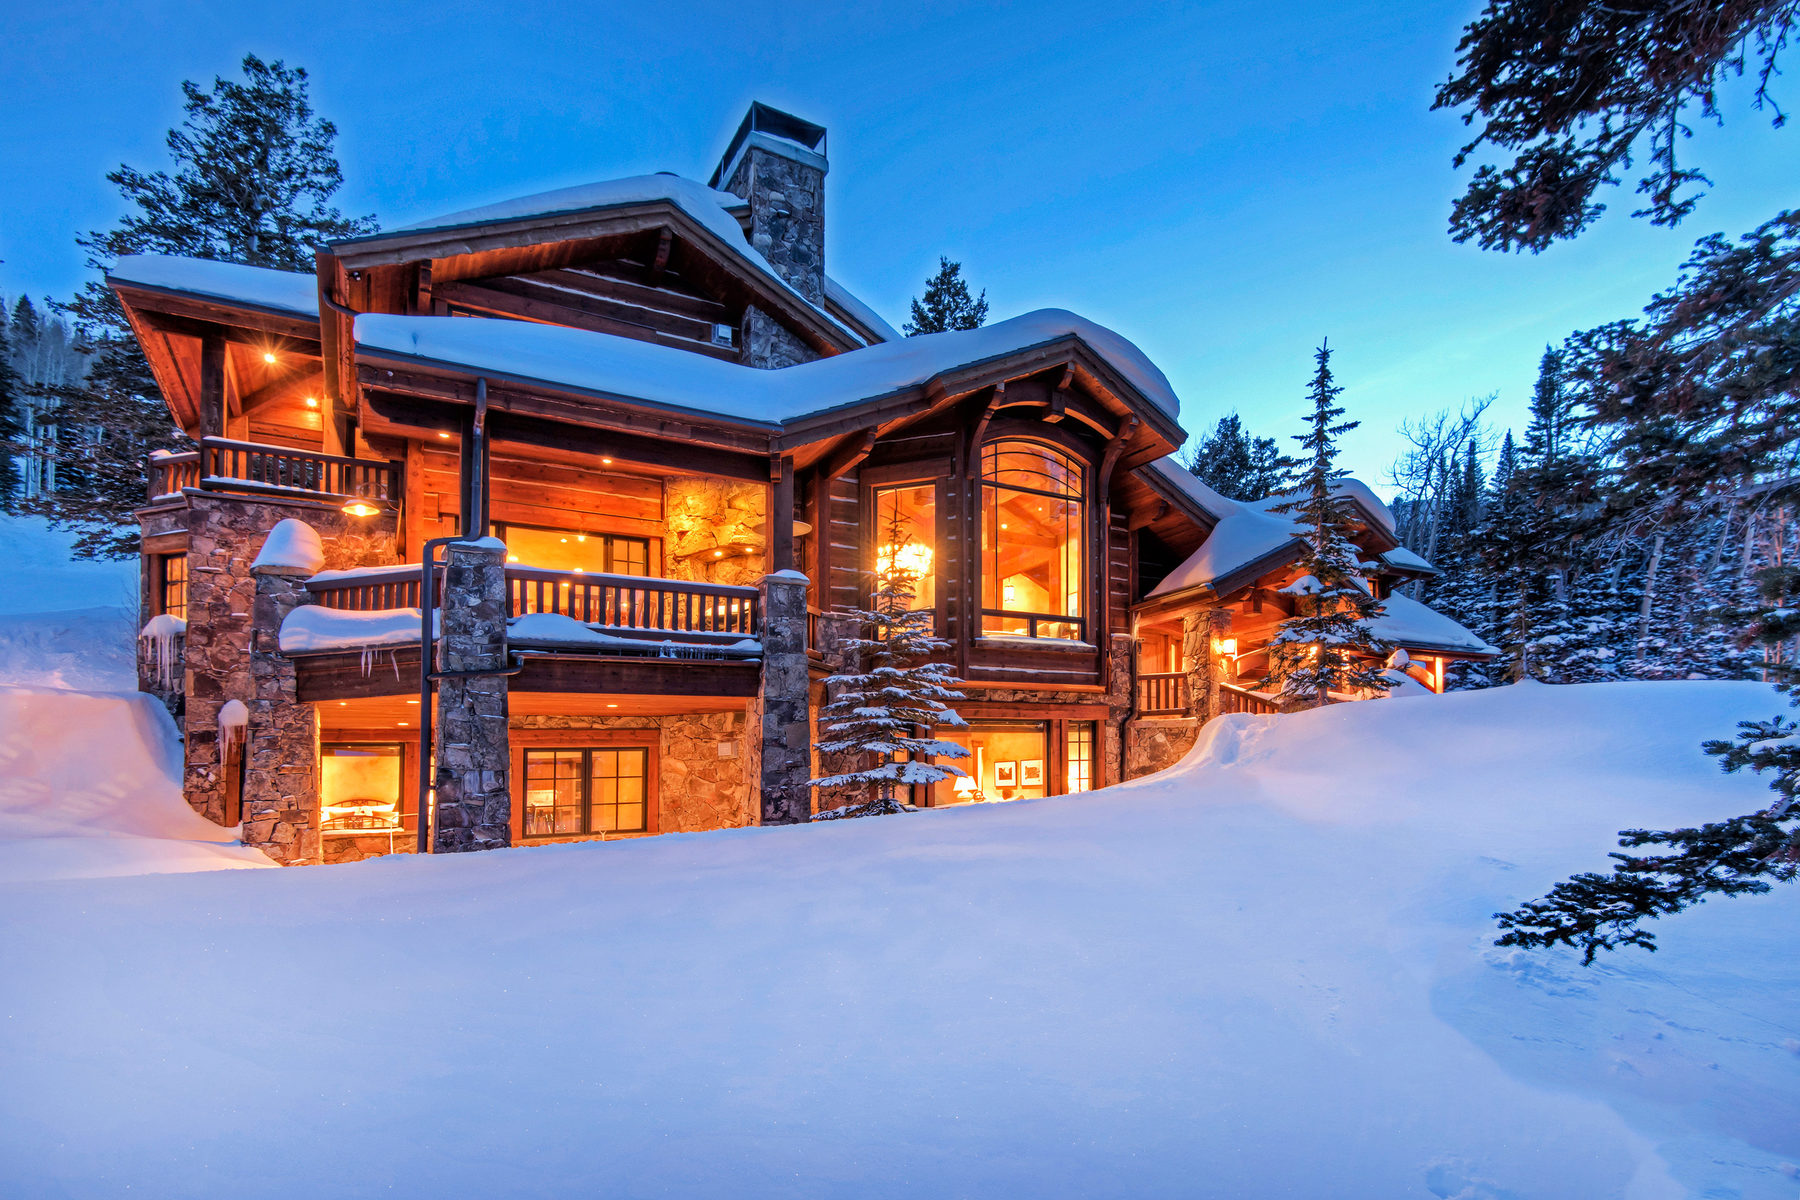 Maison unifamiliale pour l Vente à Dreamcatcher Lodge 125 White Pine Canyon Rd Park City, Utah 84060 États-Unis